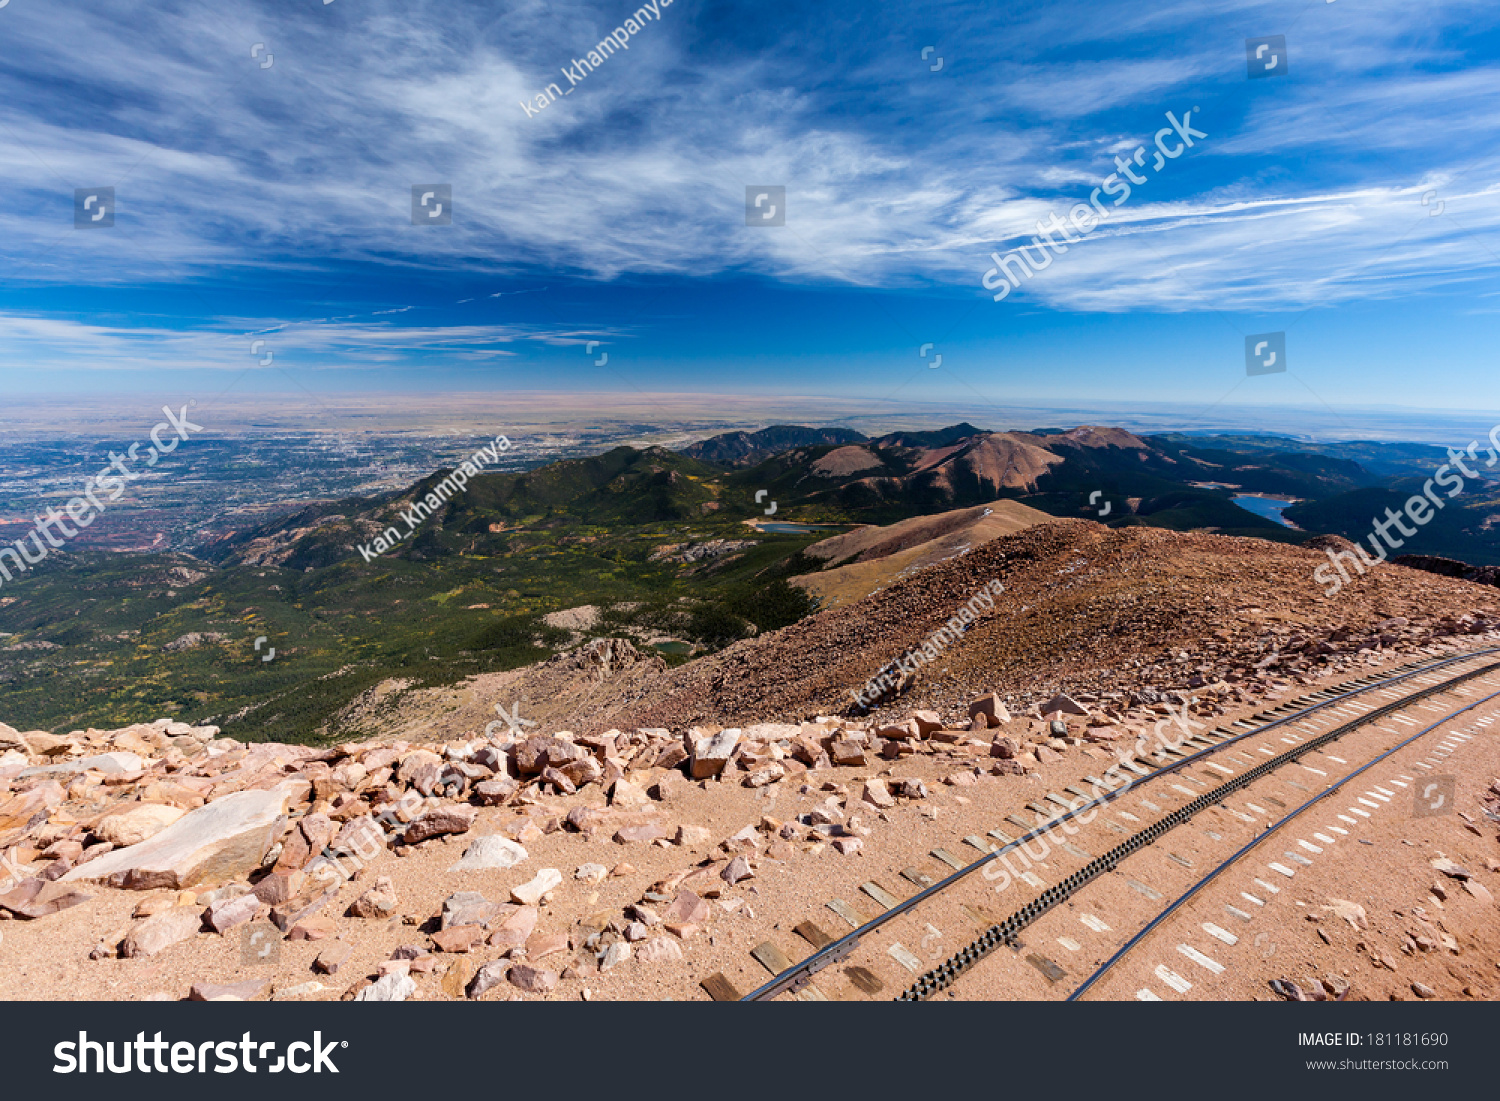 how to get to the top of pikes peak